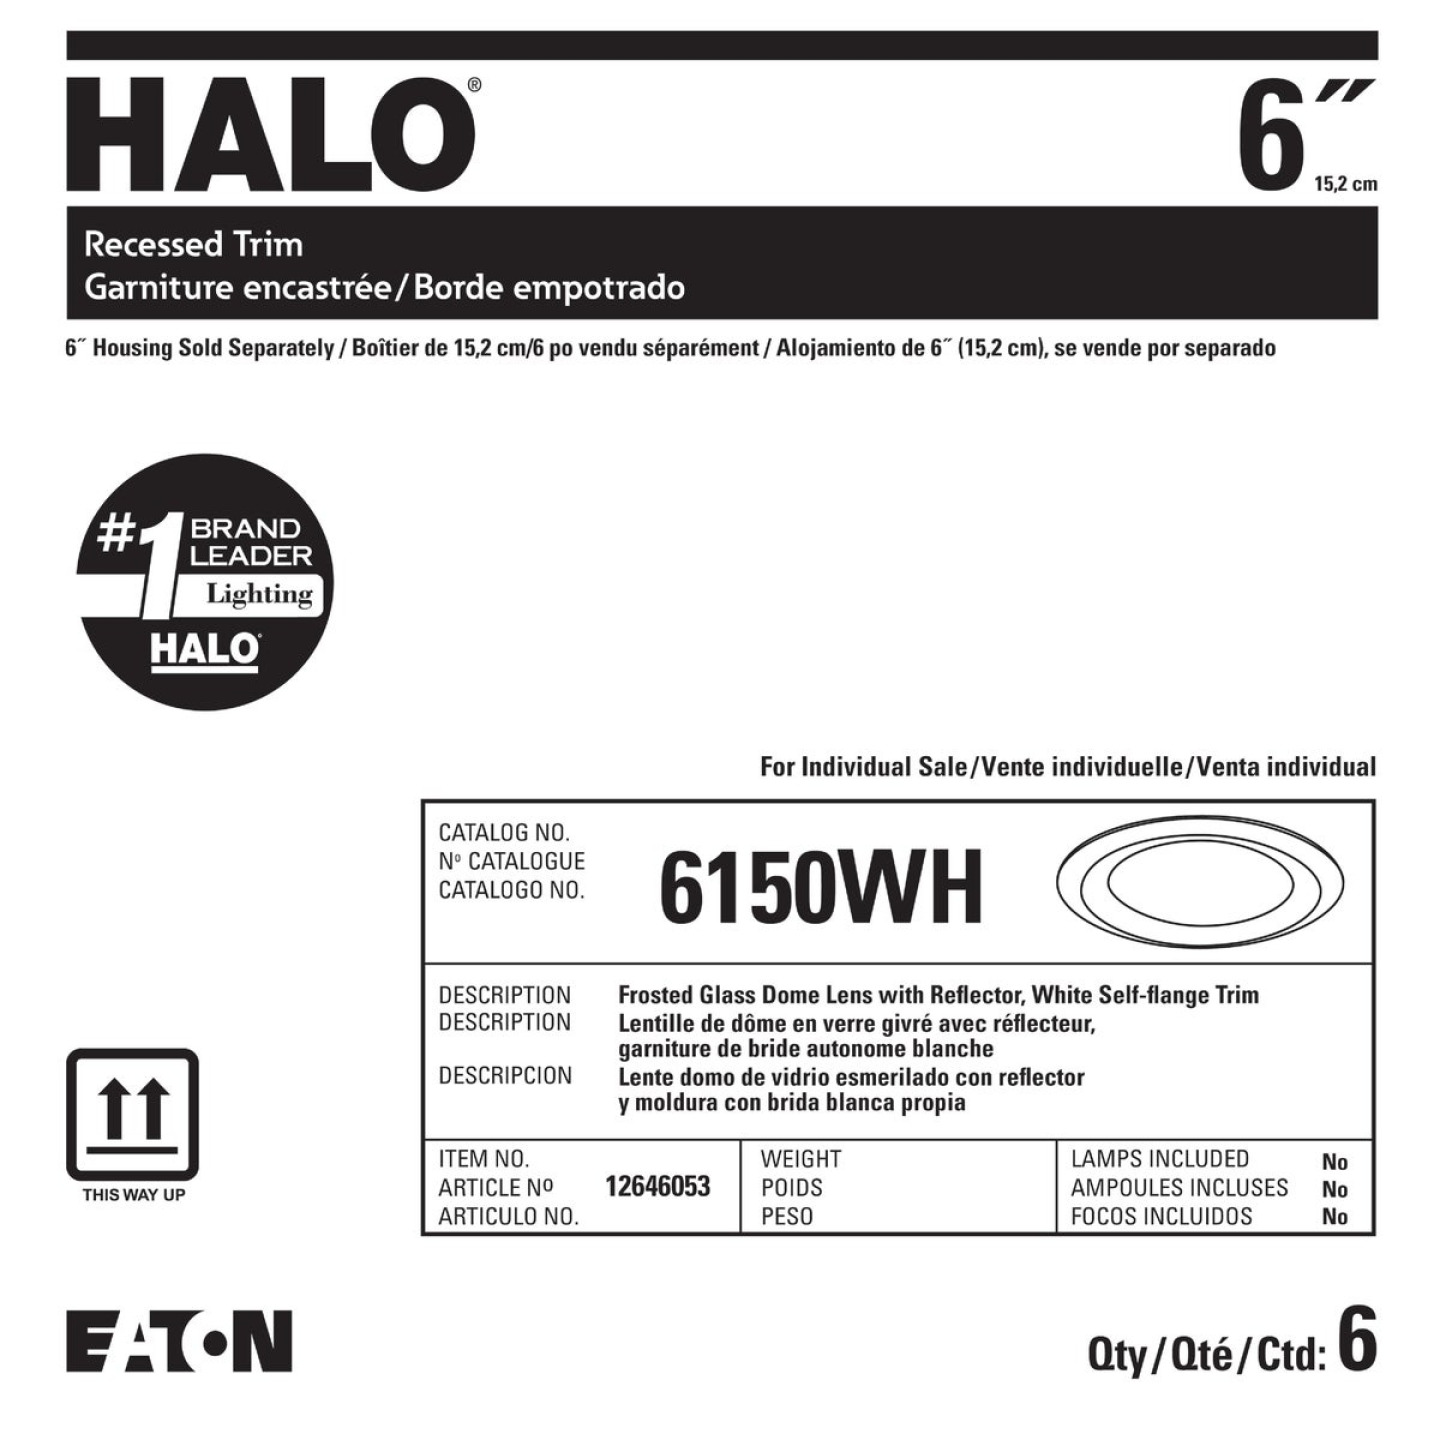 Halo 6 In. White Disc Frosted Glass Lens Recessed Light Fixture Trim Image 2